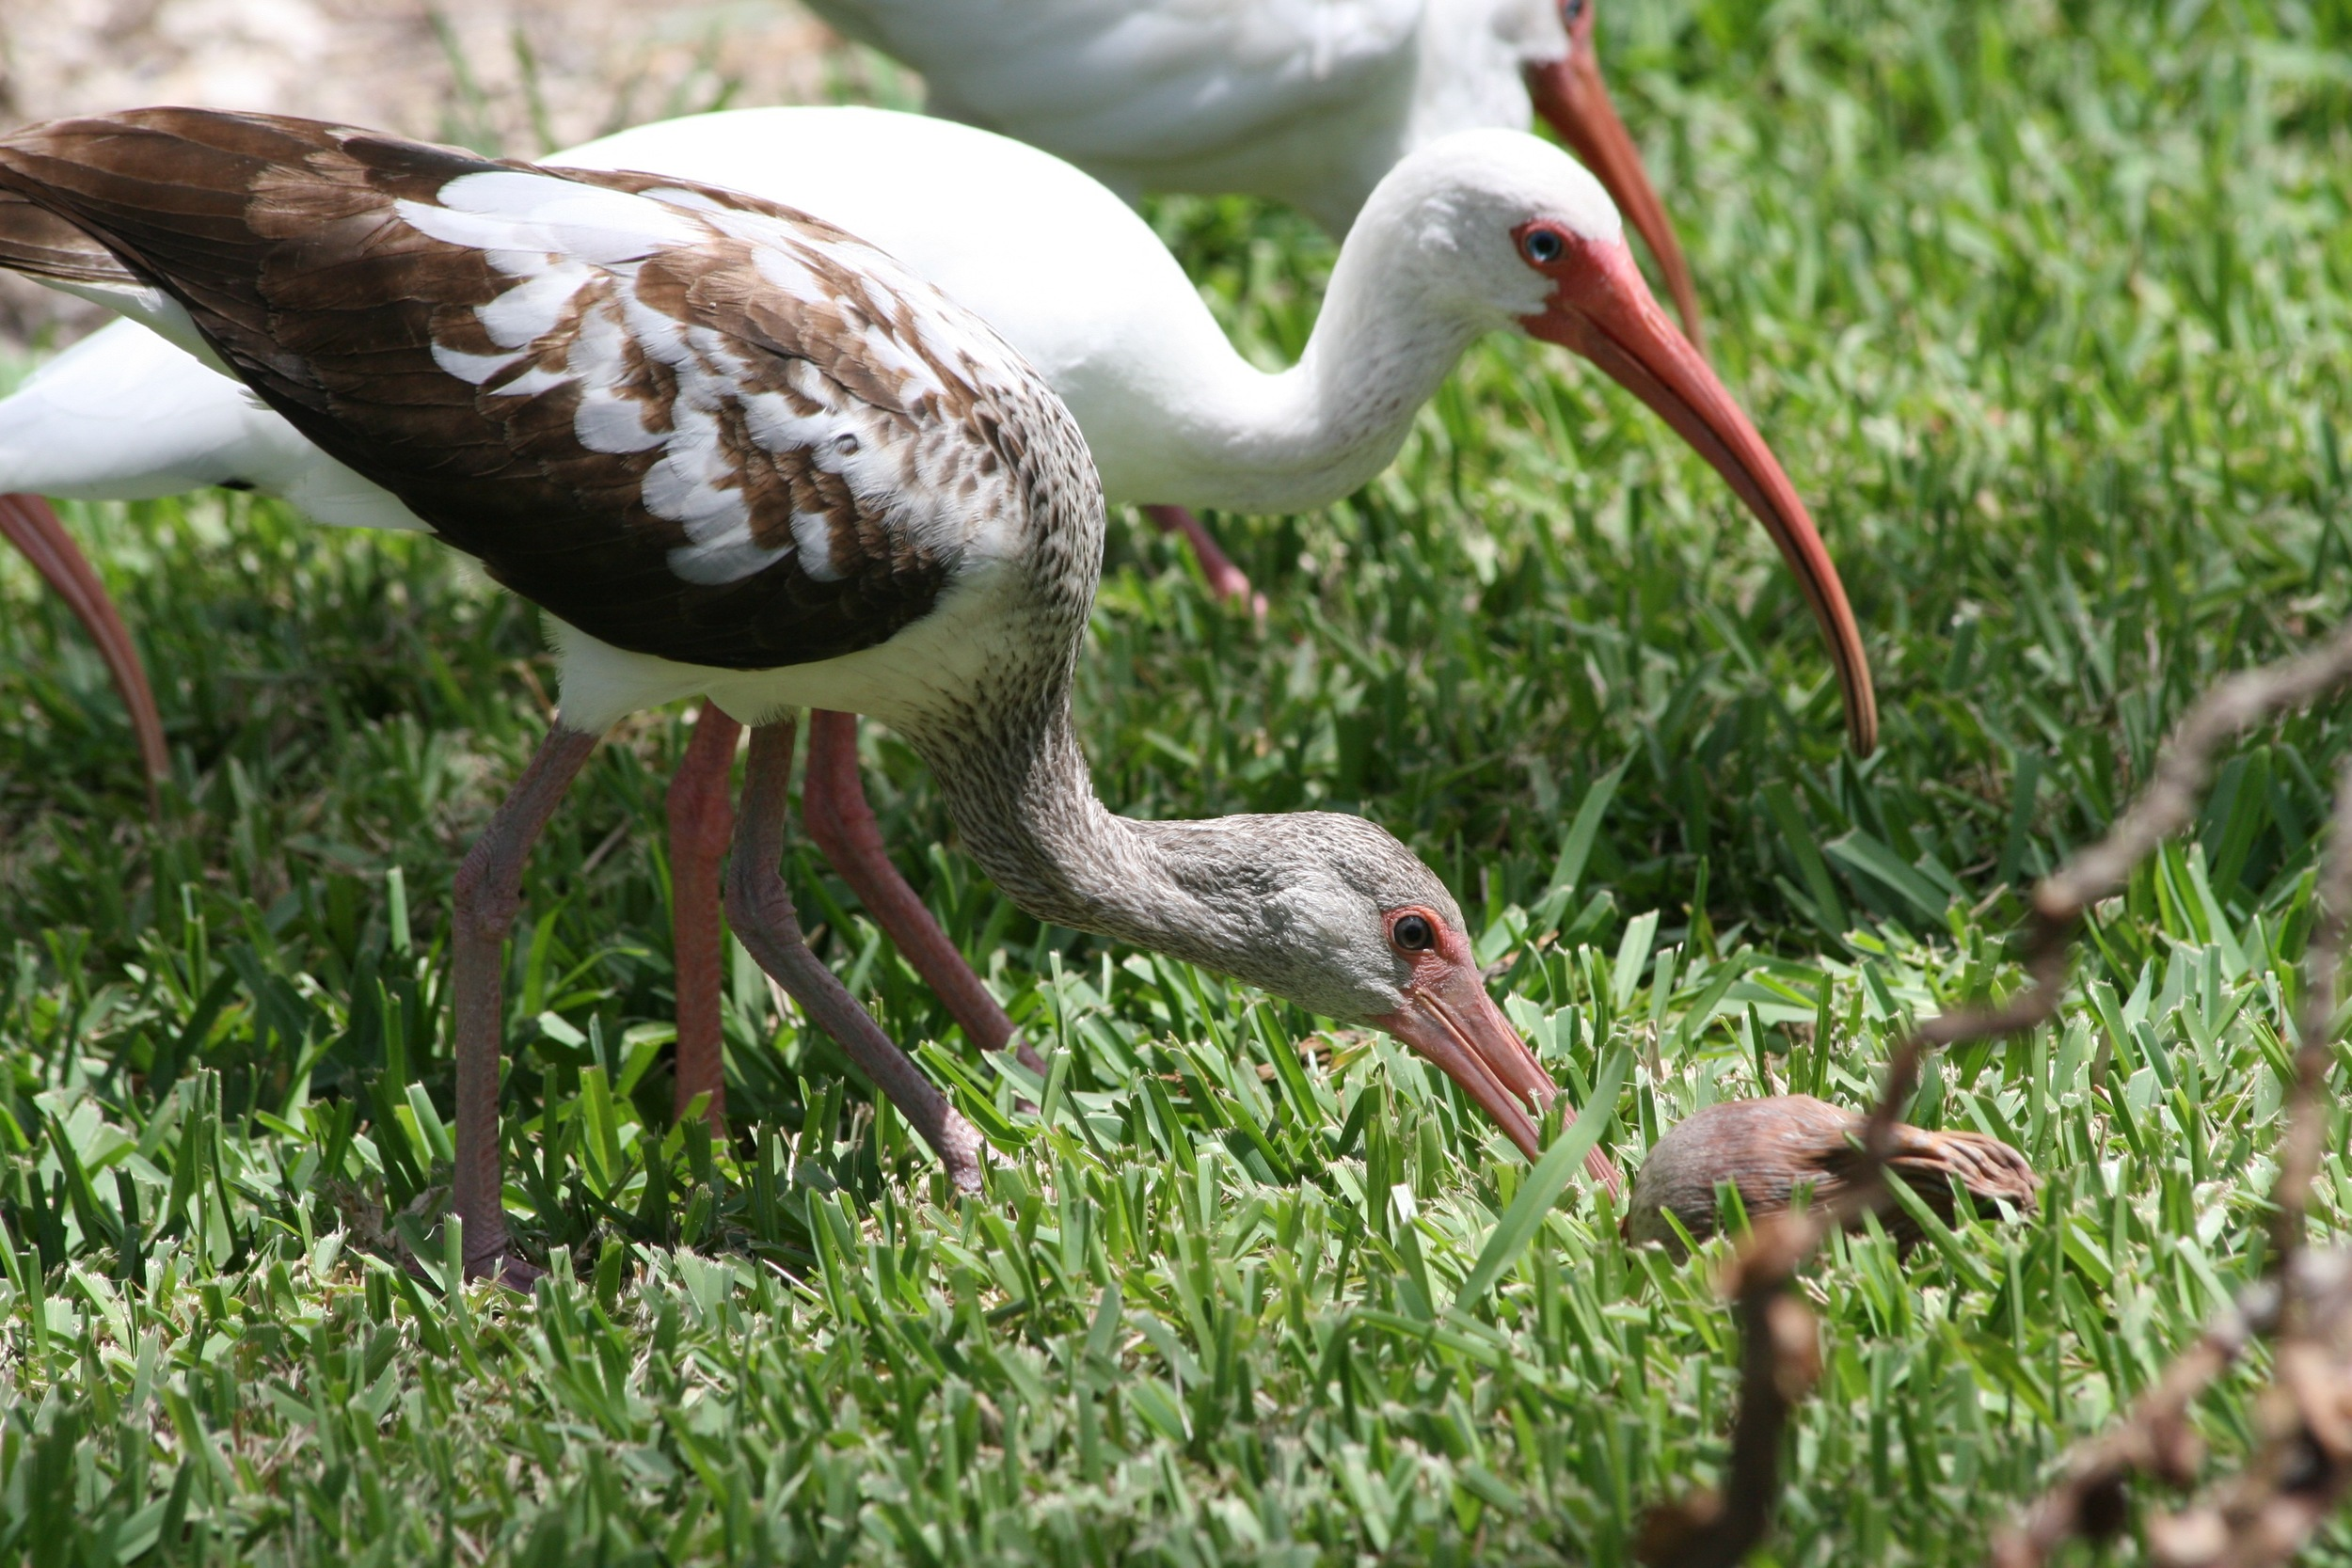 Juvenile white ibis with mottled brown feathers. Photoe by Donna Yost Williams. Florida Keys